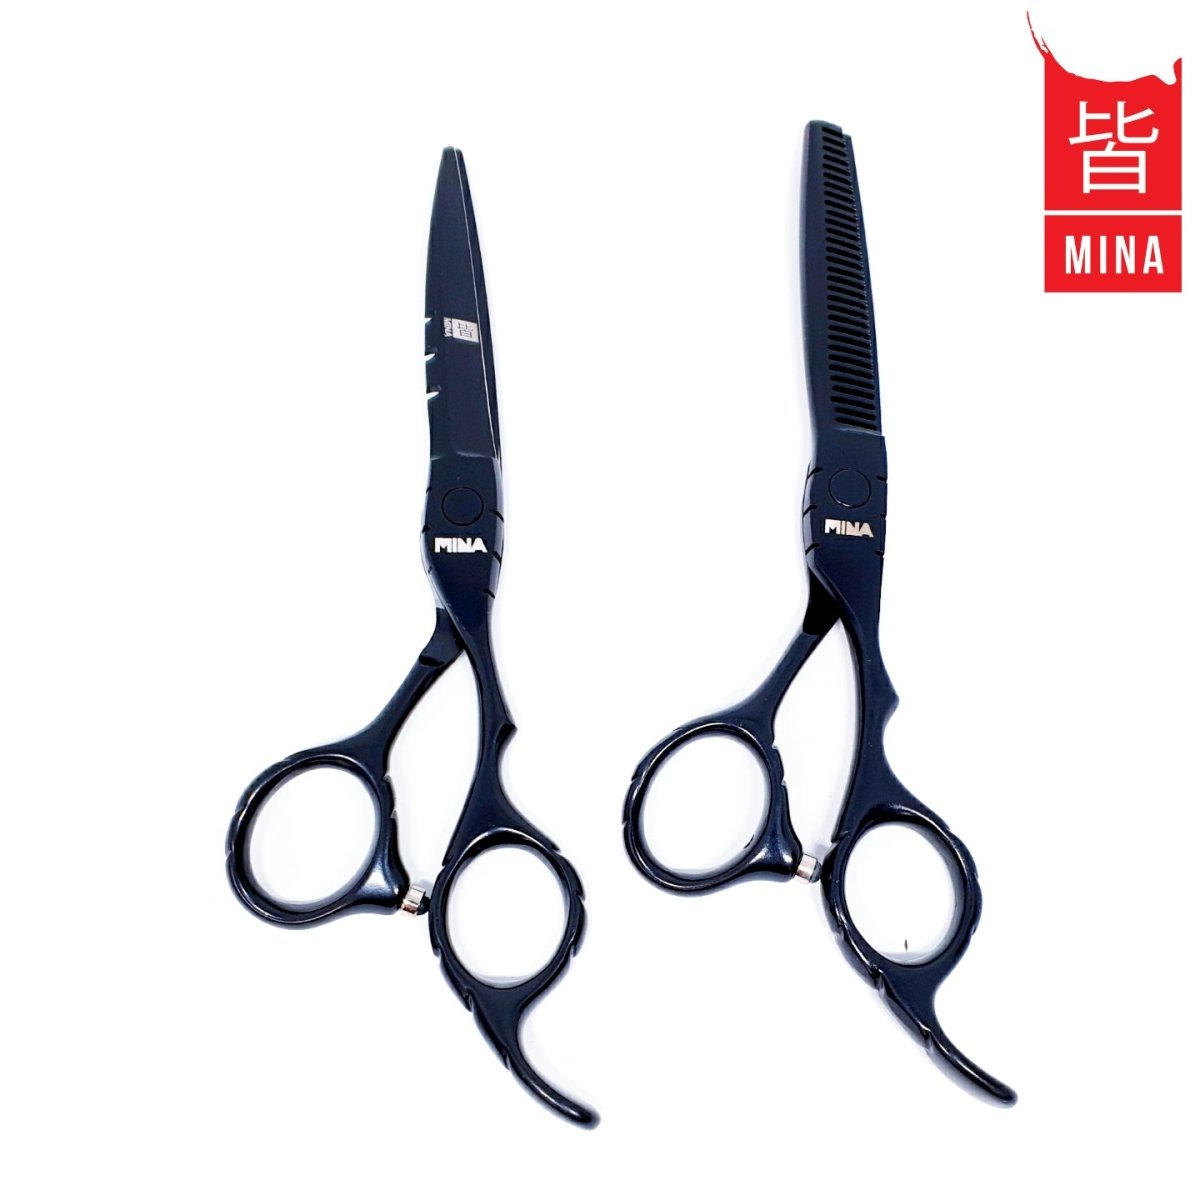 Mina Matte Black Scissors Offset Set - Japan Scissors